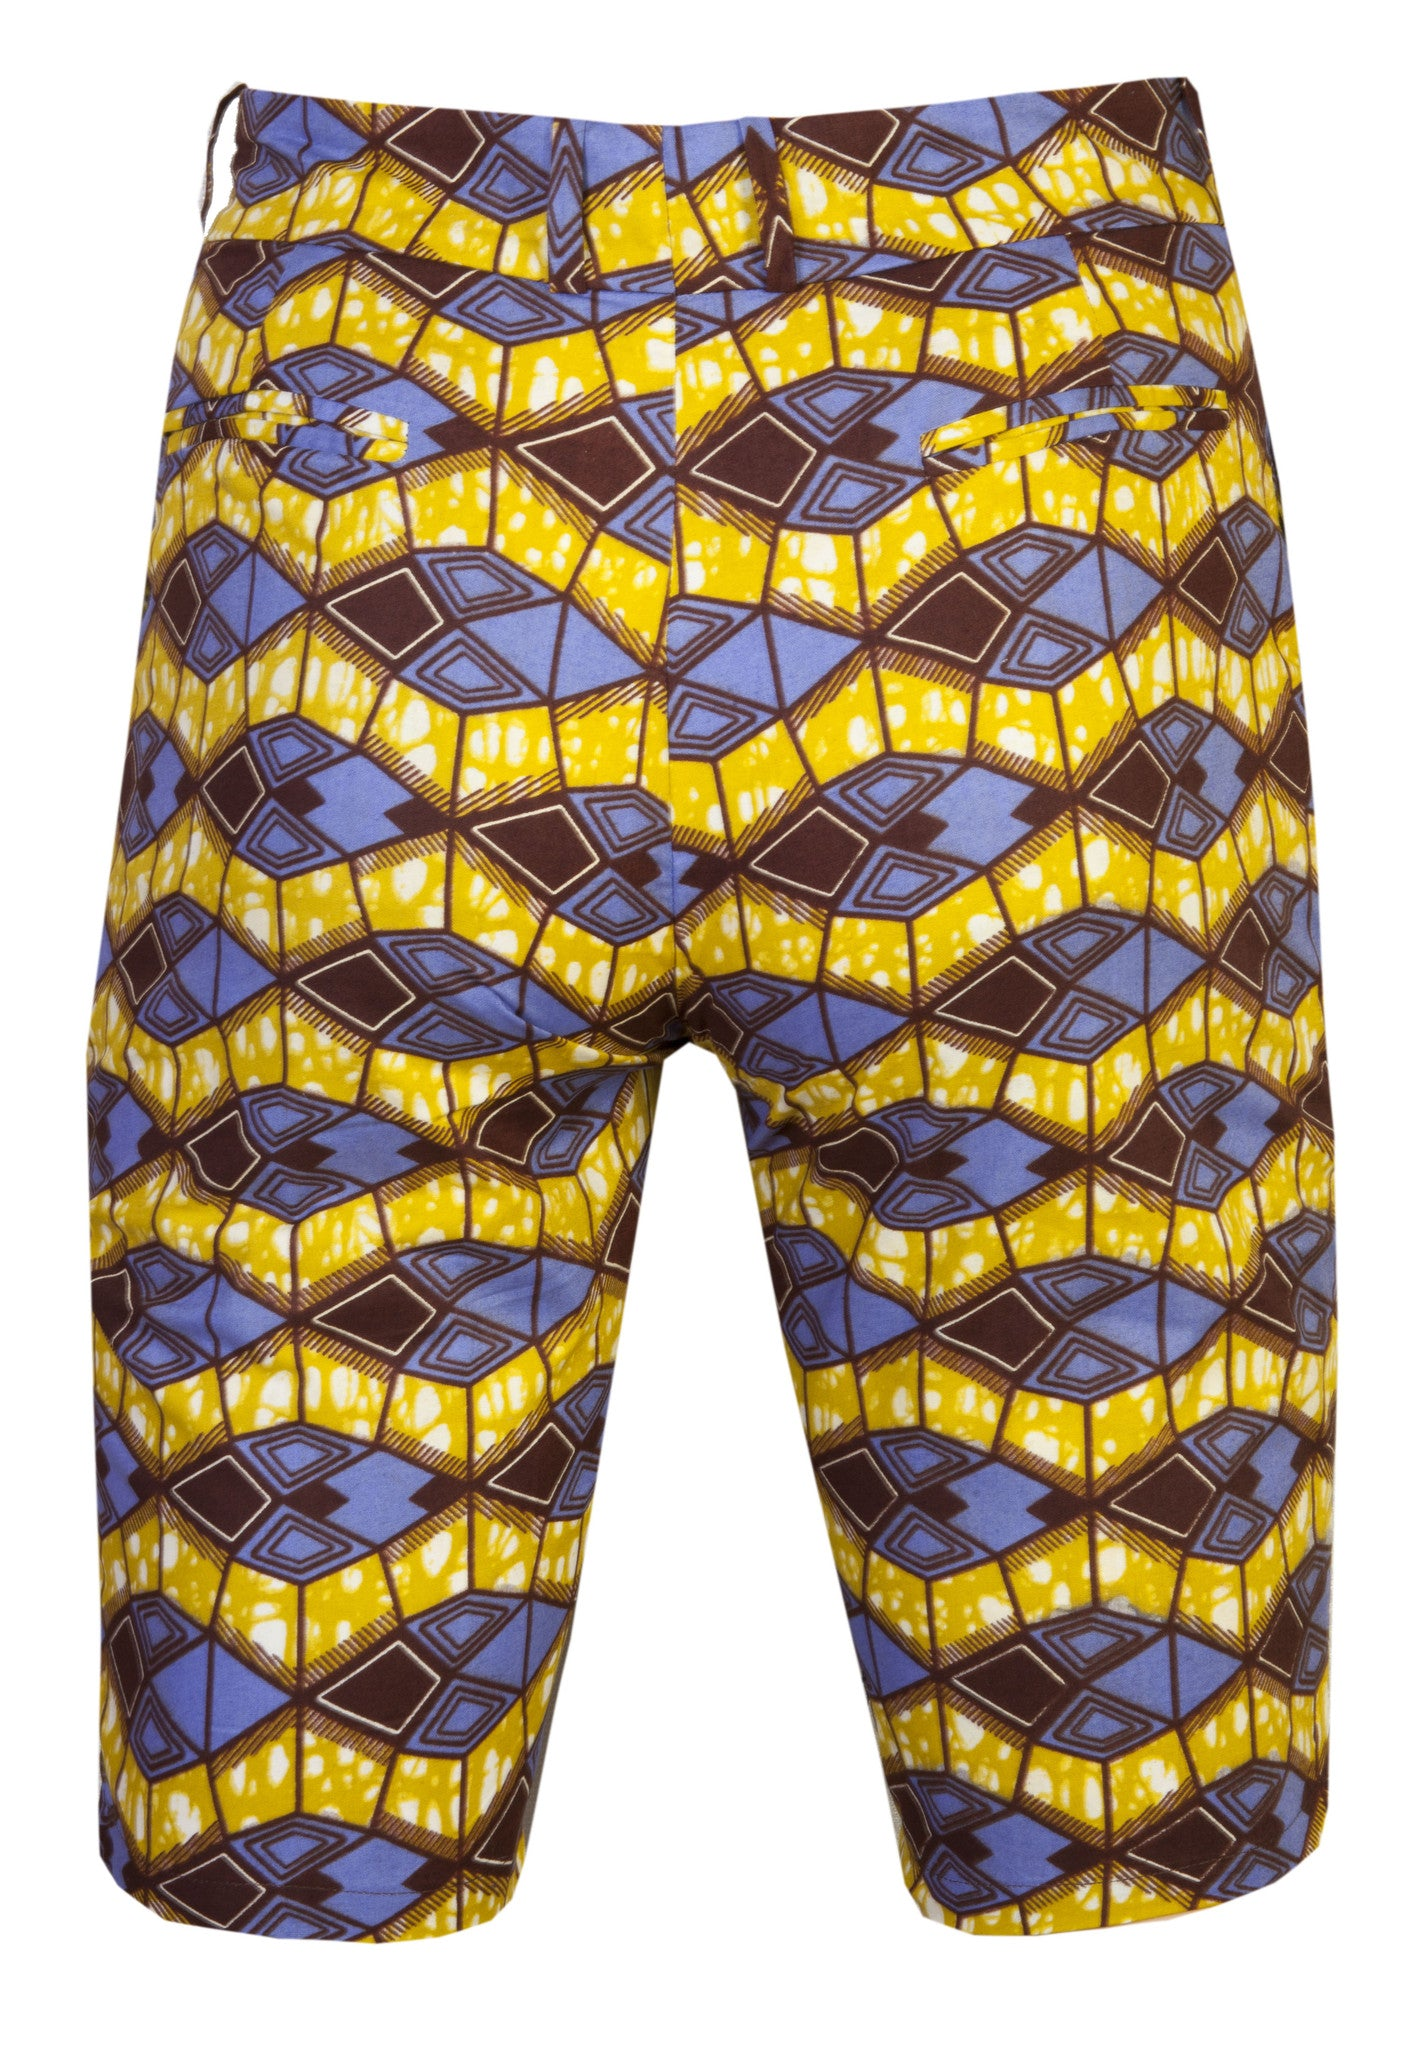 Jamie 'Azzme' Mens Fitted shorts - OHEMA OHENE AFRICAN INSPIRED FASHION  - 2